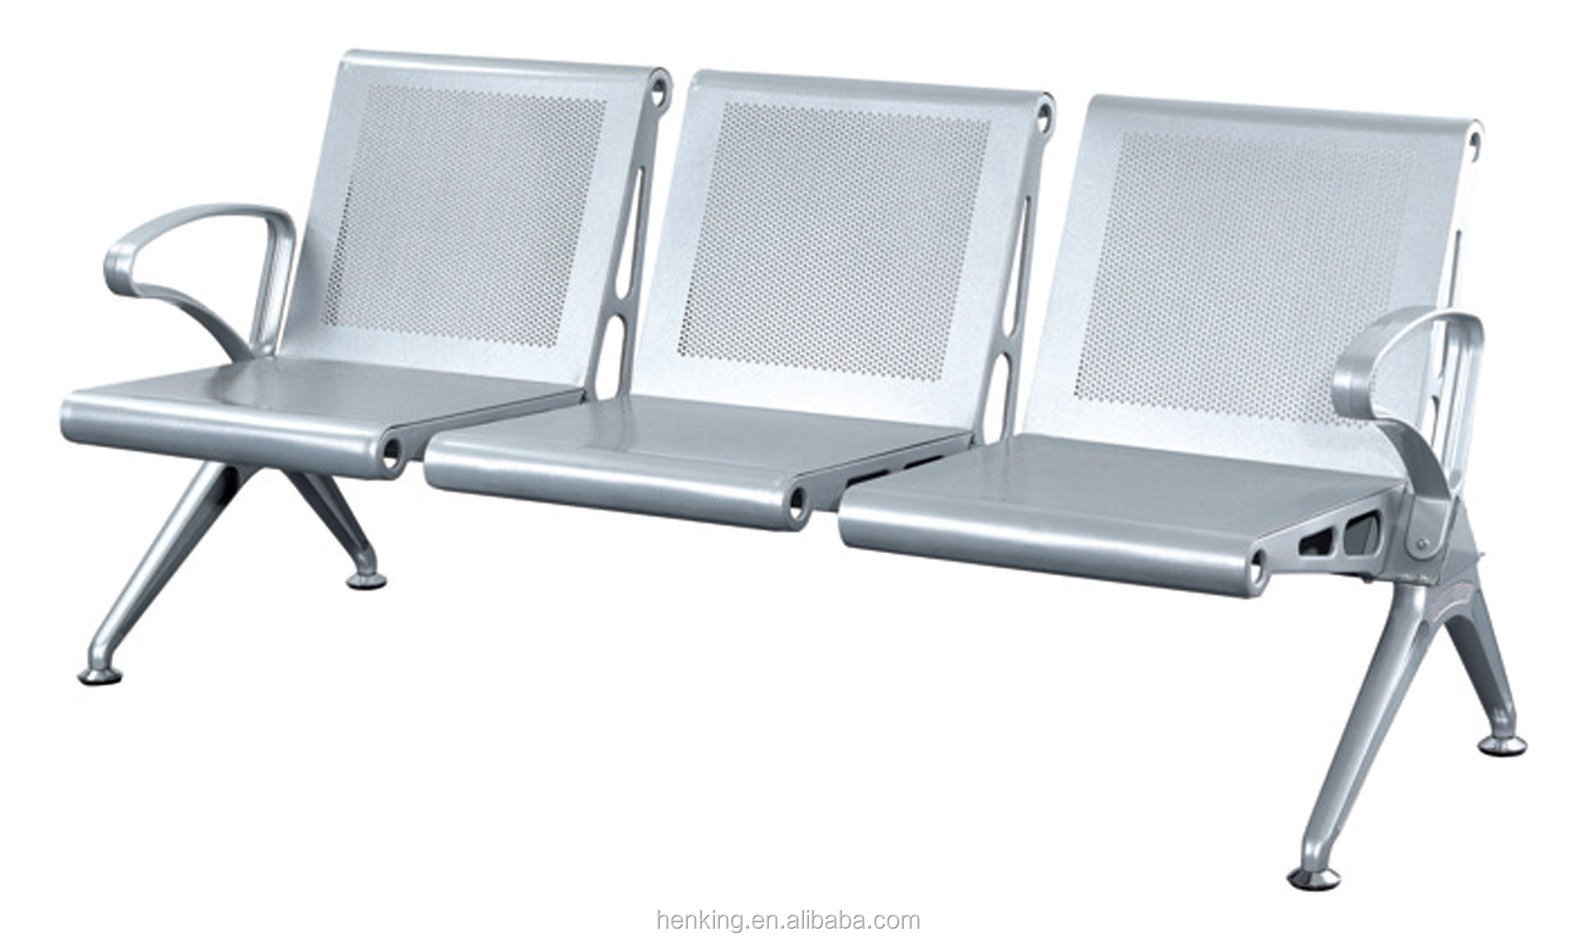 Henking Airport Chair 3 Seater Waiting Seats H317 3